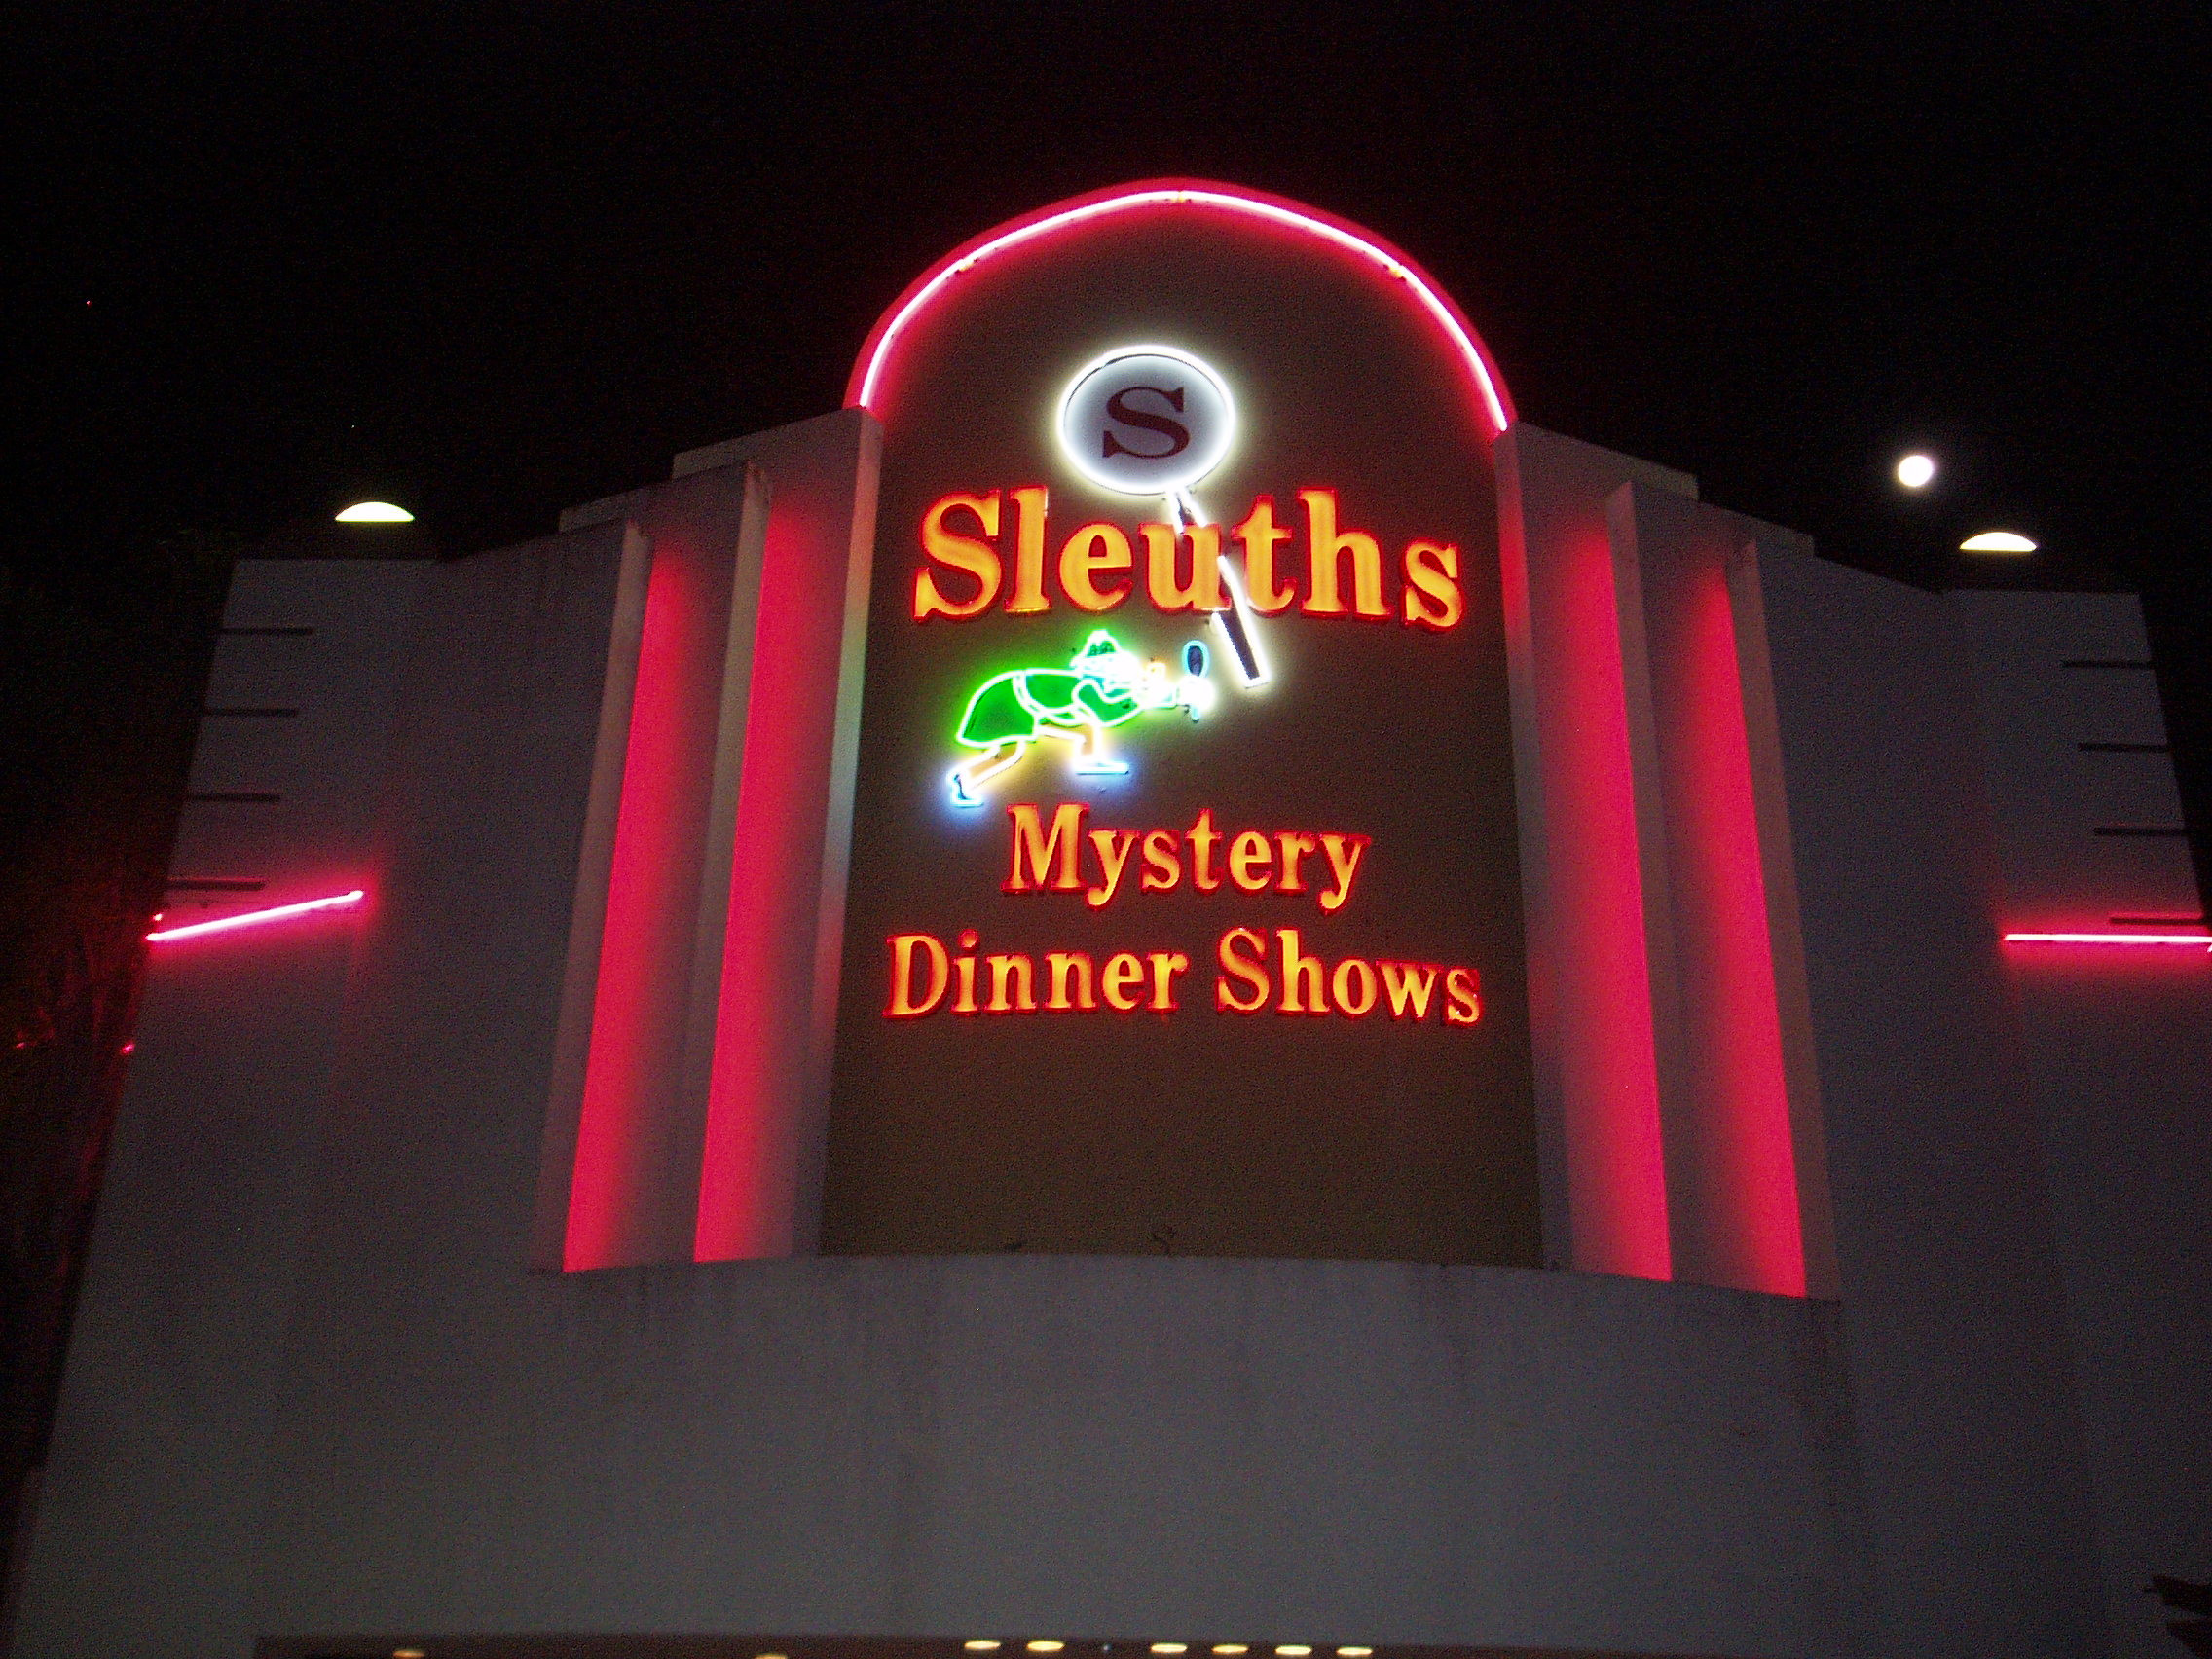 Sleuths Mystery Dinner Shows  Dinner Shows